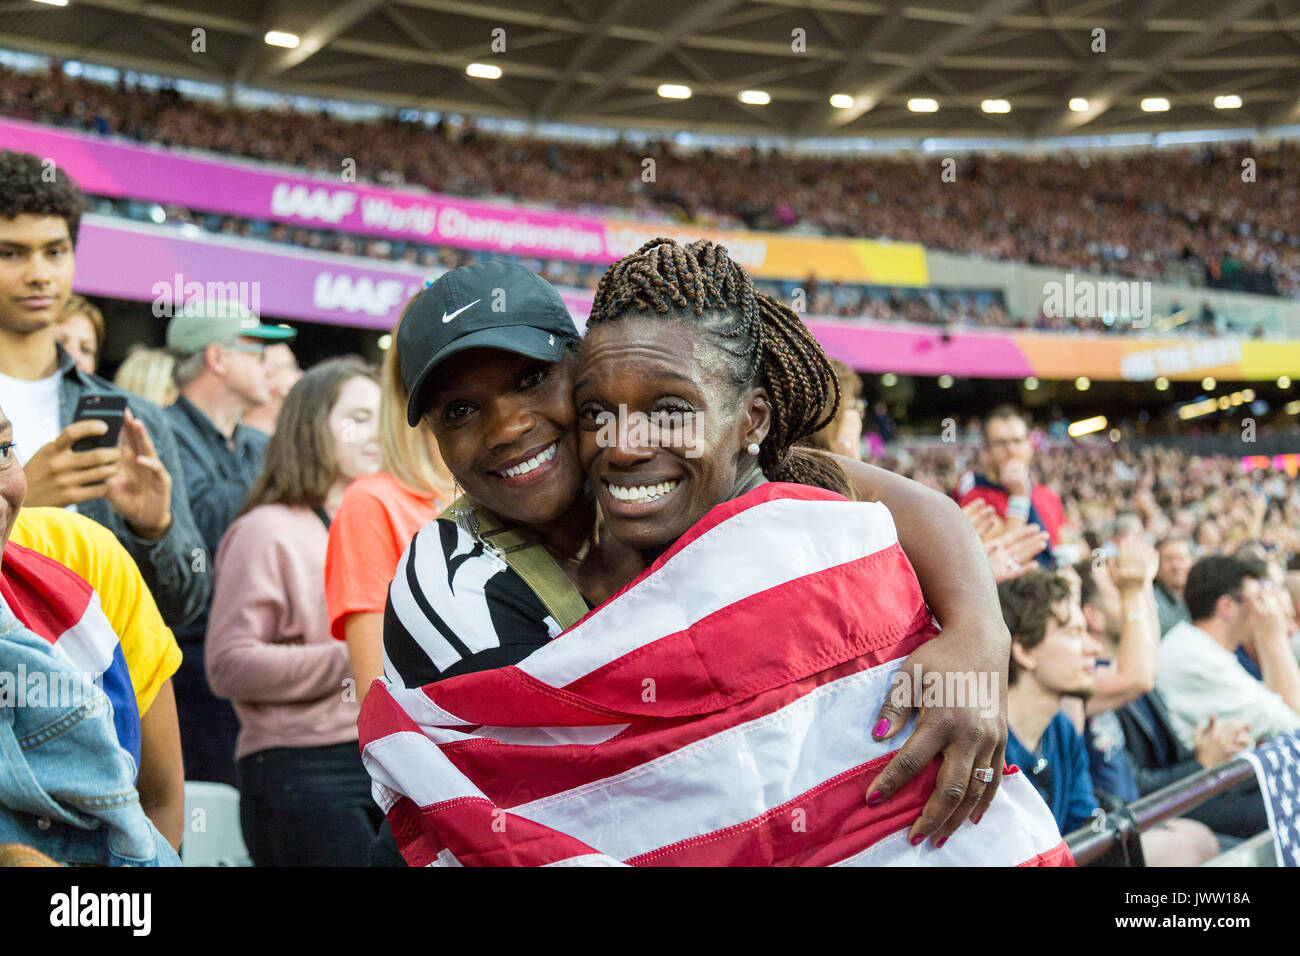 London, UK. 12th Aug, 2017.  Dawn Harper Nelson, USA, is embraced by her proud mother Linda following her silver medal in the women's 100m hurdles final on day nine of the IAAF London 2017 world Championships at the London Stadium. Credit: Paul Davey/Alamy Live News - Stock Image